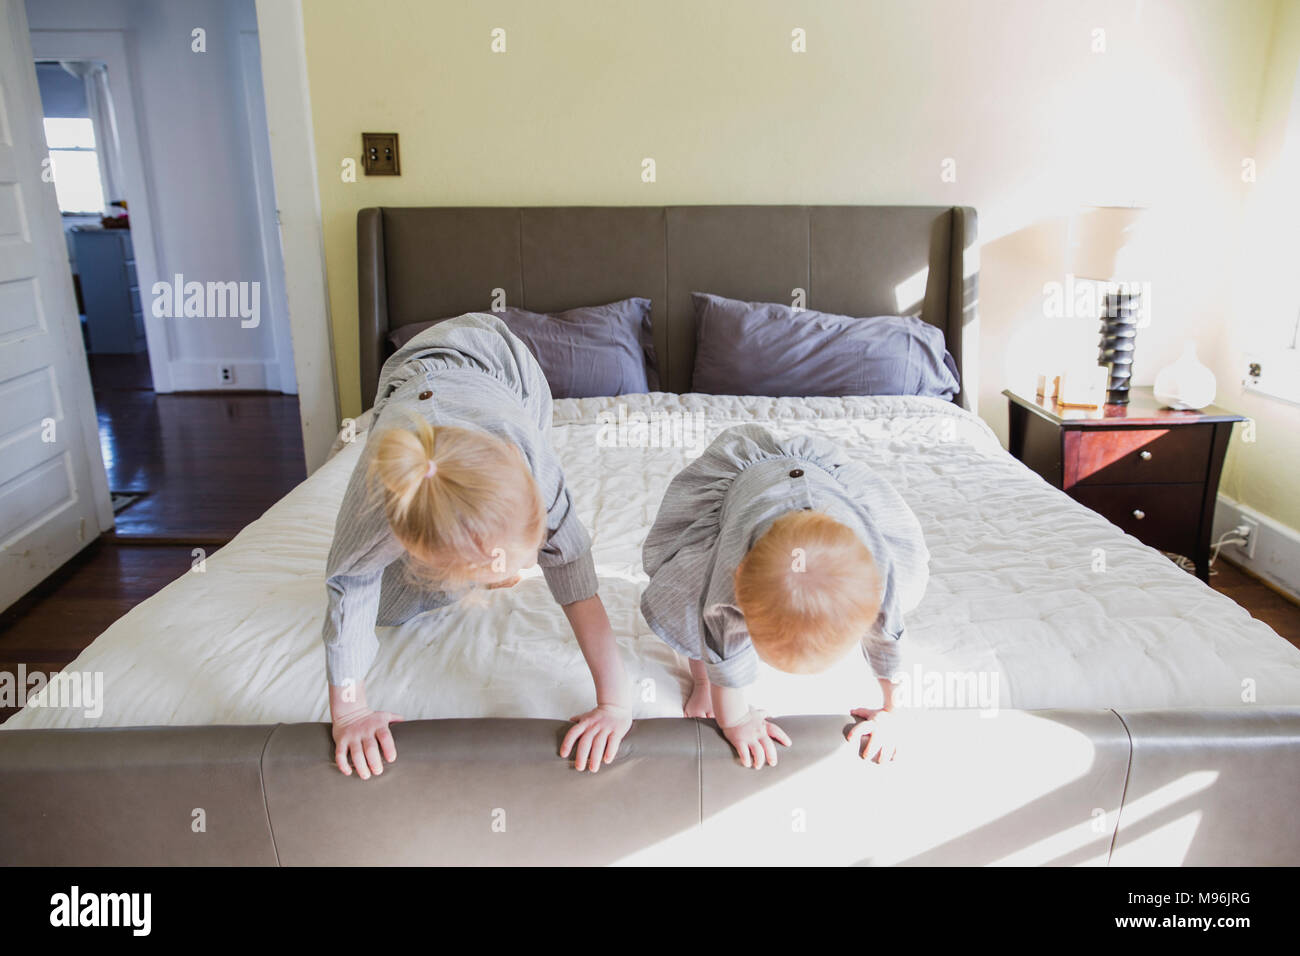 Girl and baby playing on bed Stock Photo